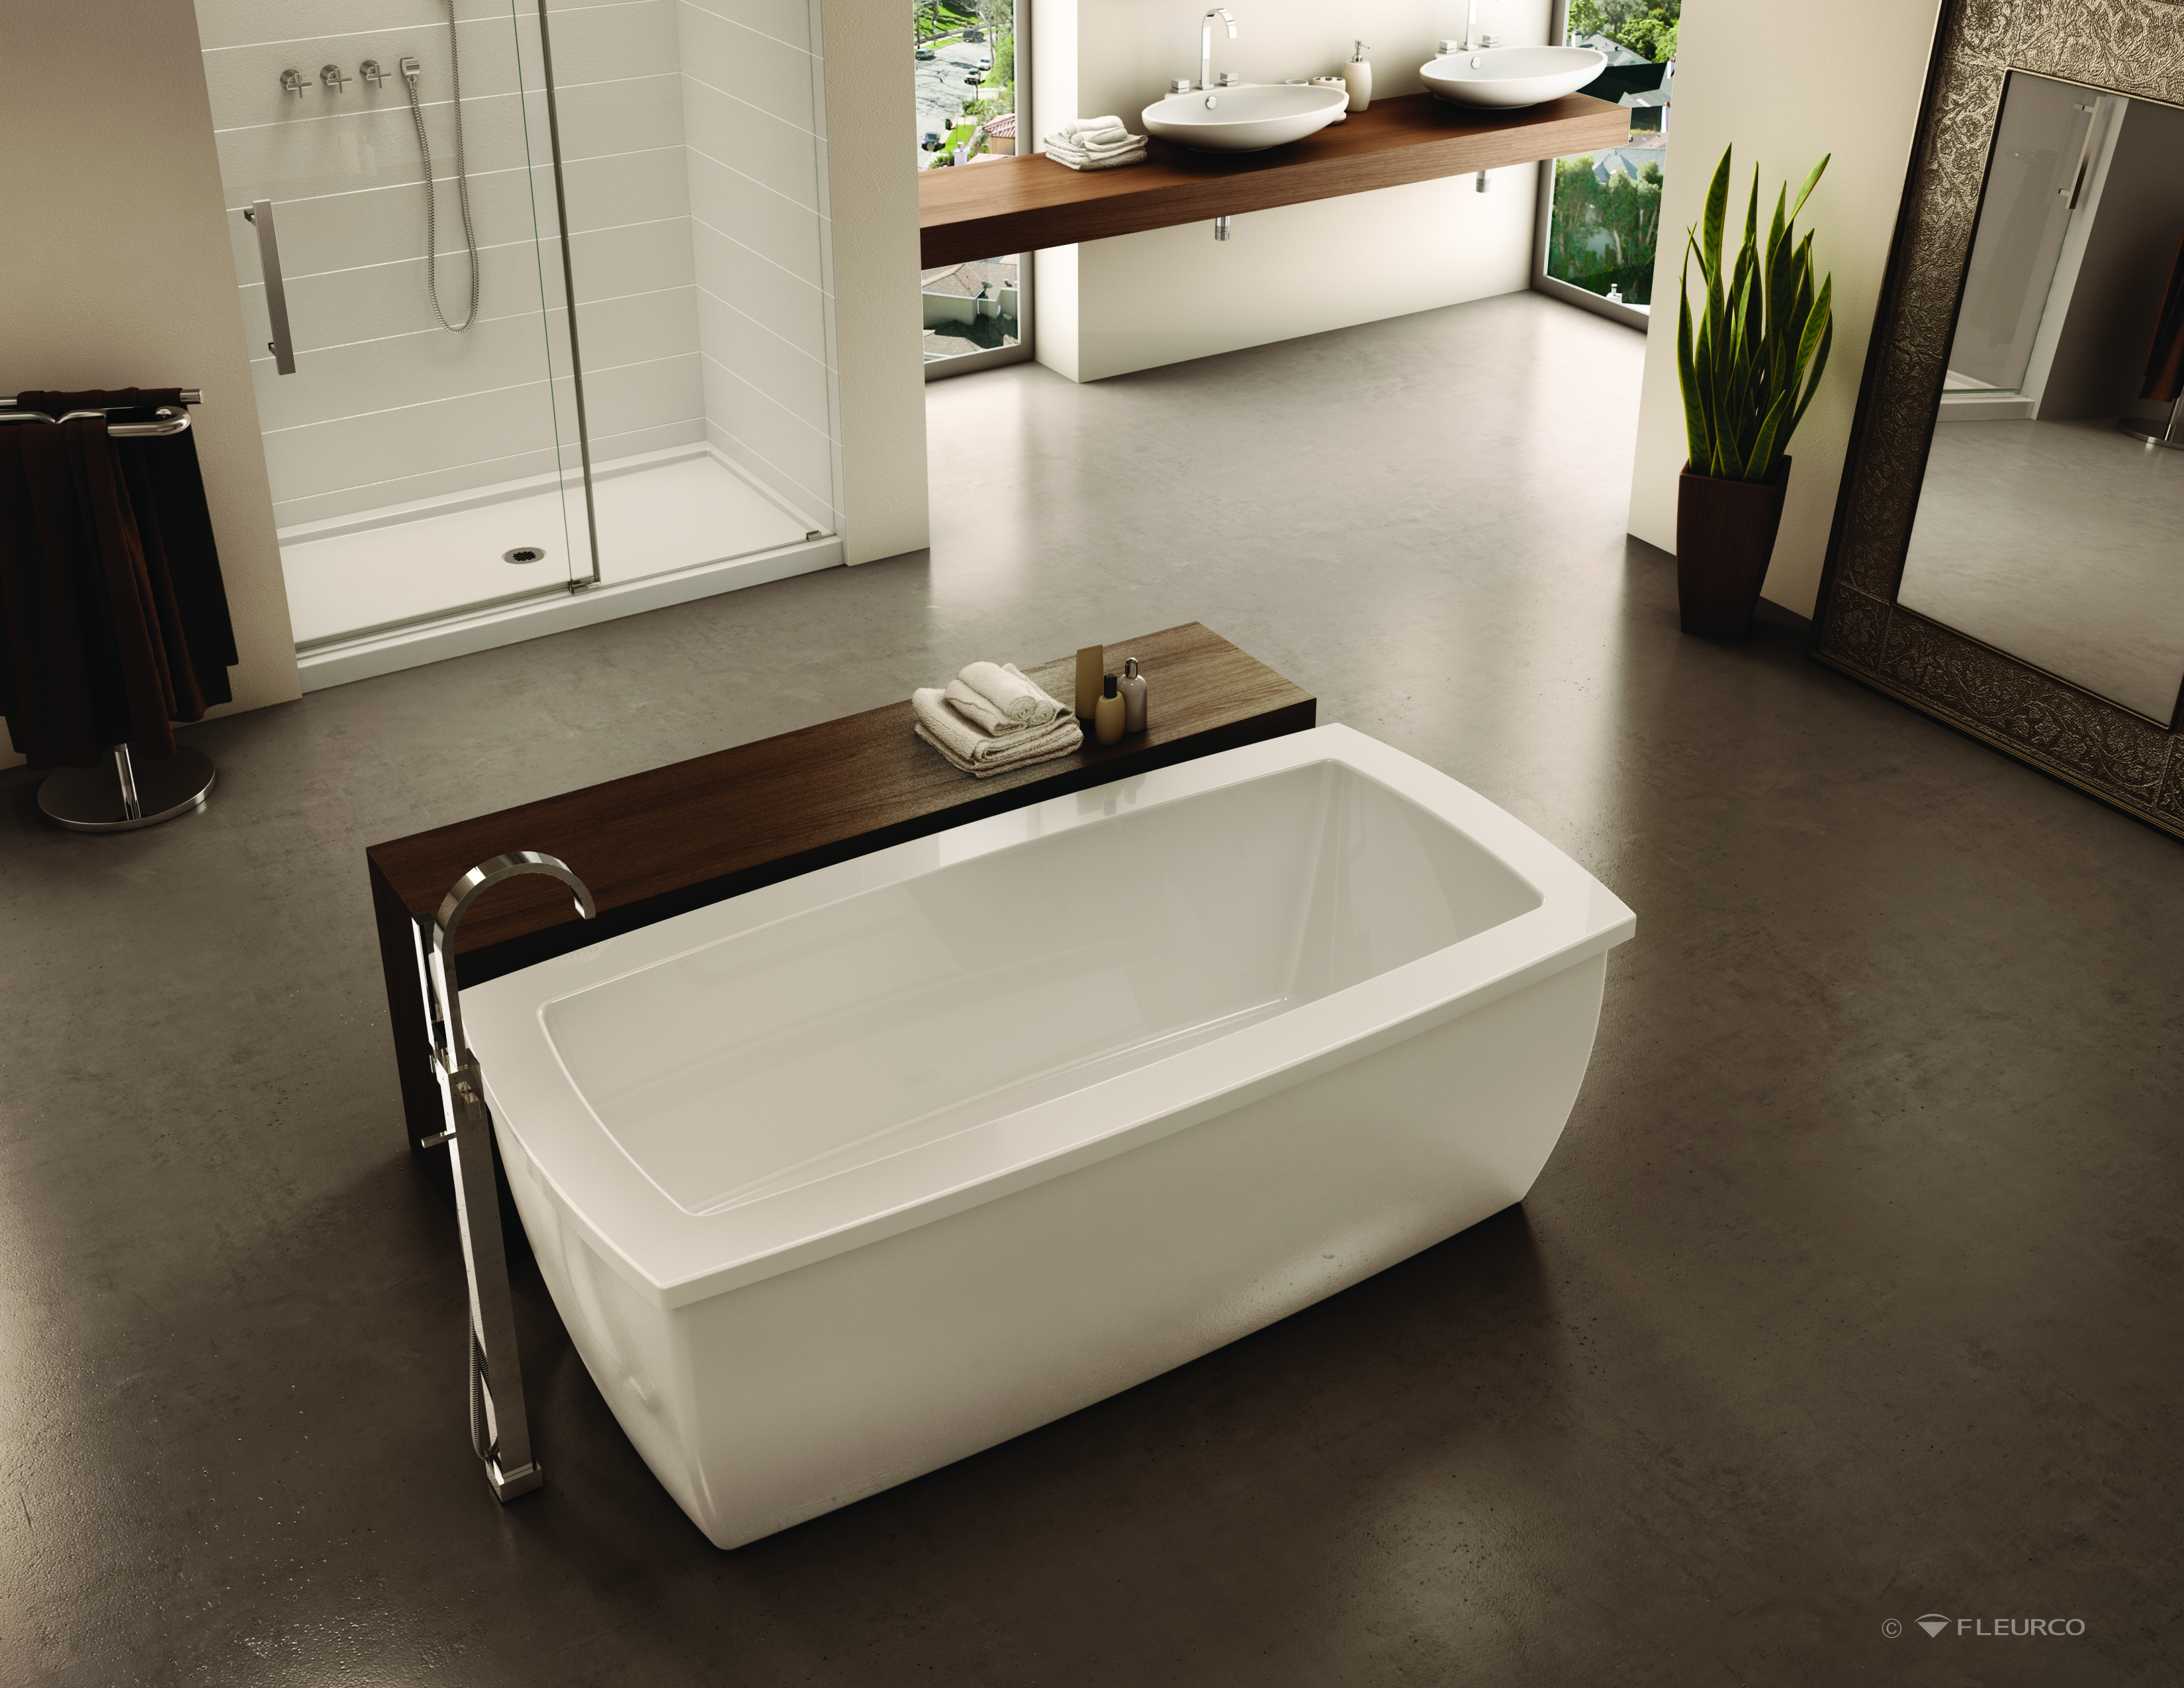 feet and htm showroom set sq touch simulate serve to displays product as home space prelude inspiration over bathtub of experience many numerous design see